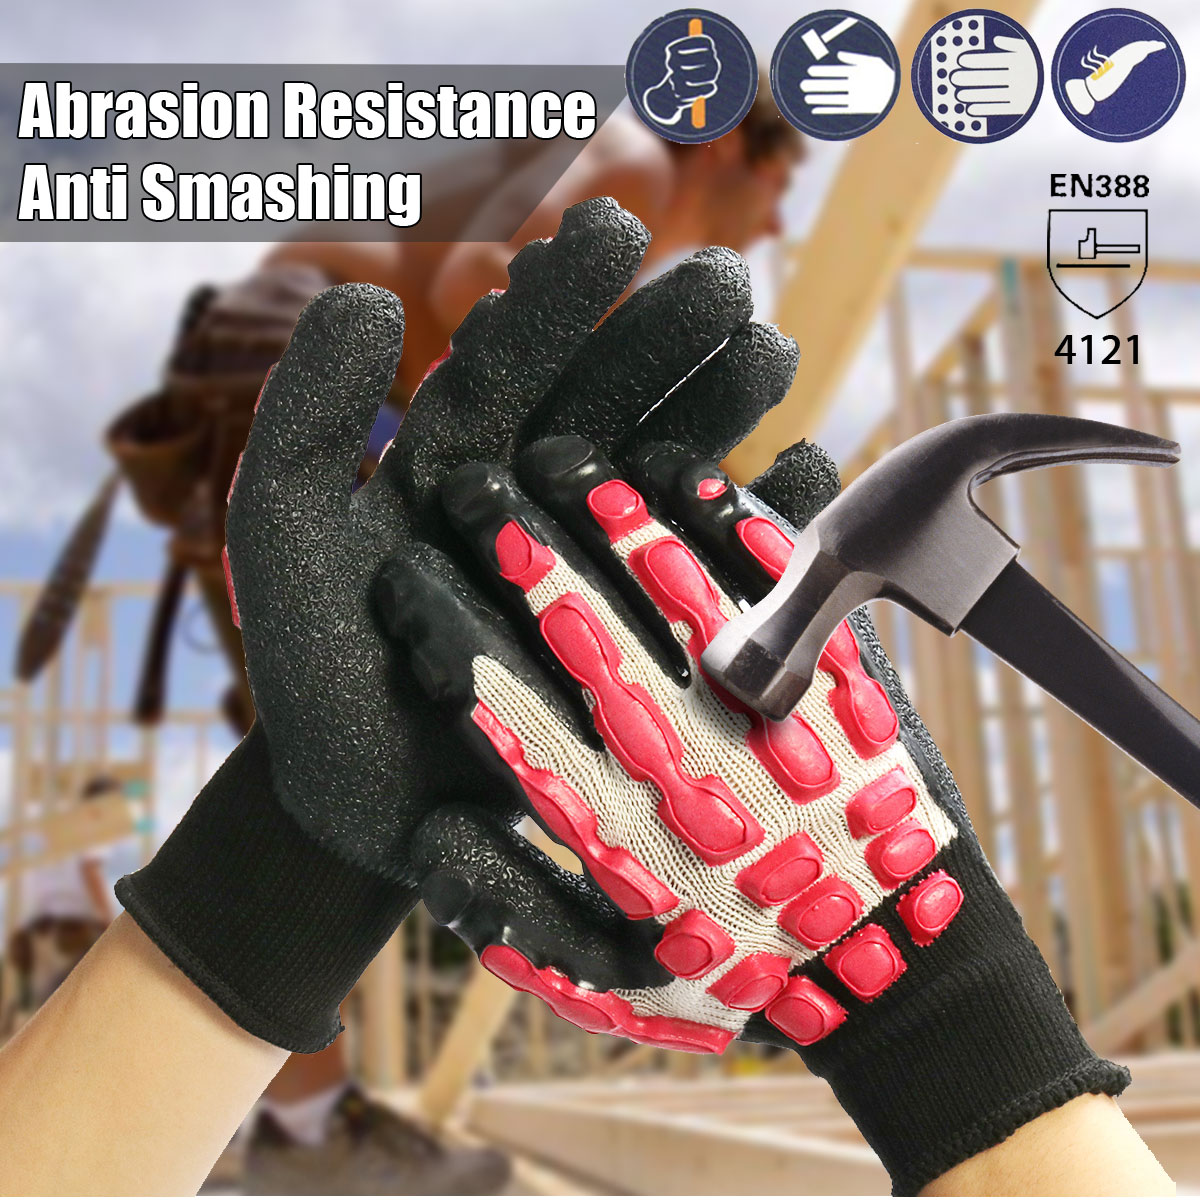 Safety Gloves Bright Srsafety 1 Pairs Free Shipping Anti Vibration Working Gloves Anti Impact Mechanic Gloves Workplace Safety Supplies